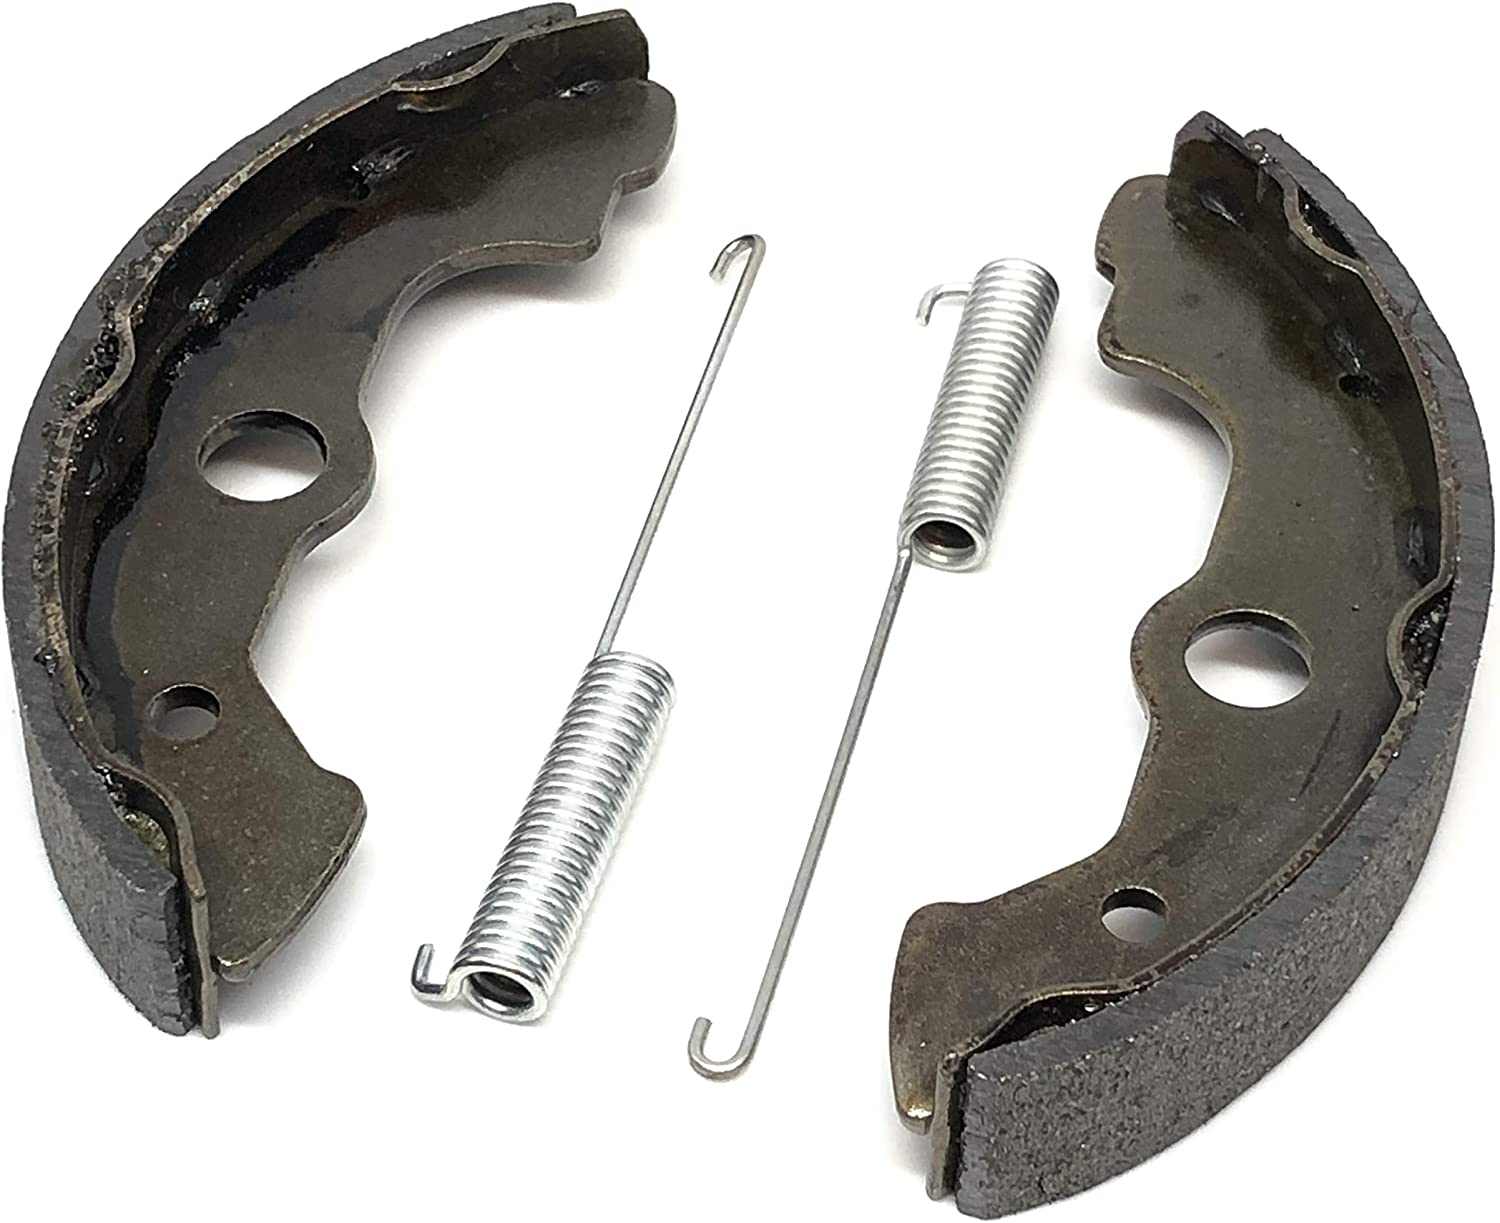 Motadin Brake Shoes For Honda 06450-HN5-671 45151-HC5-006 45151-HC5-741 Replaces